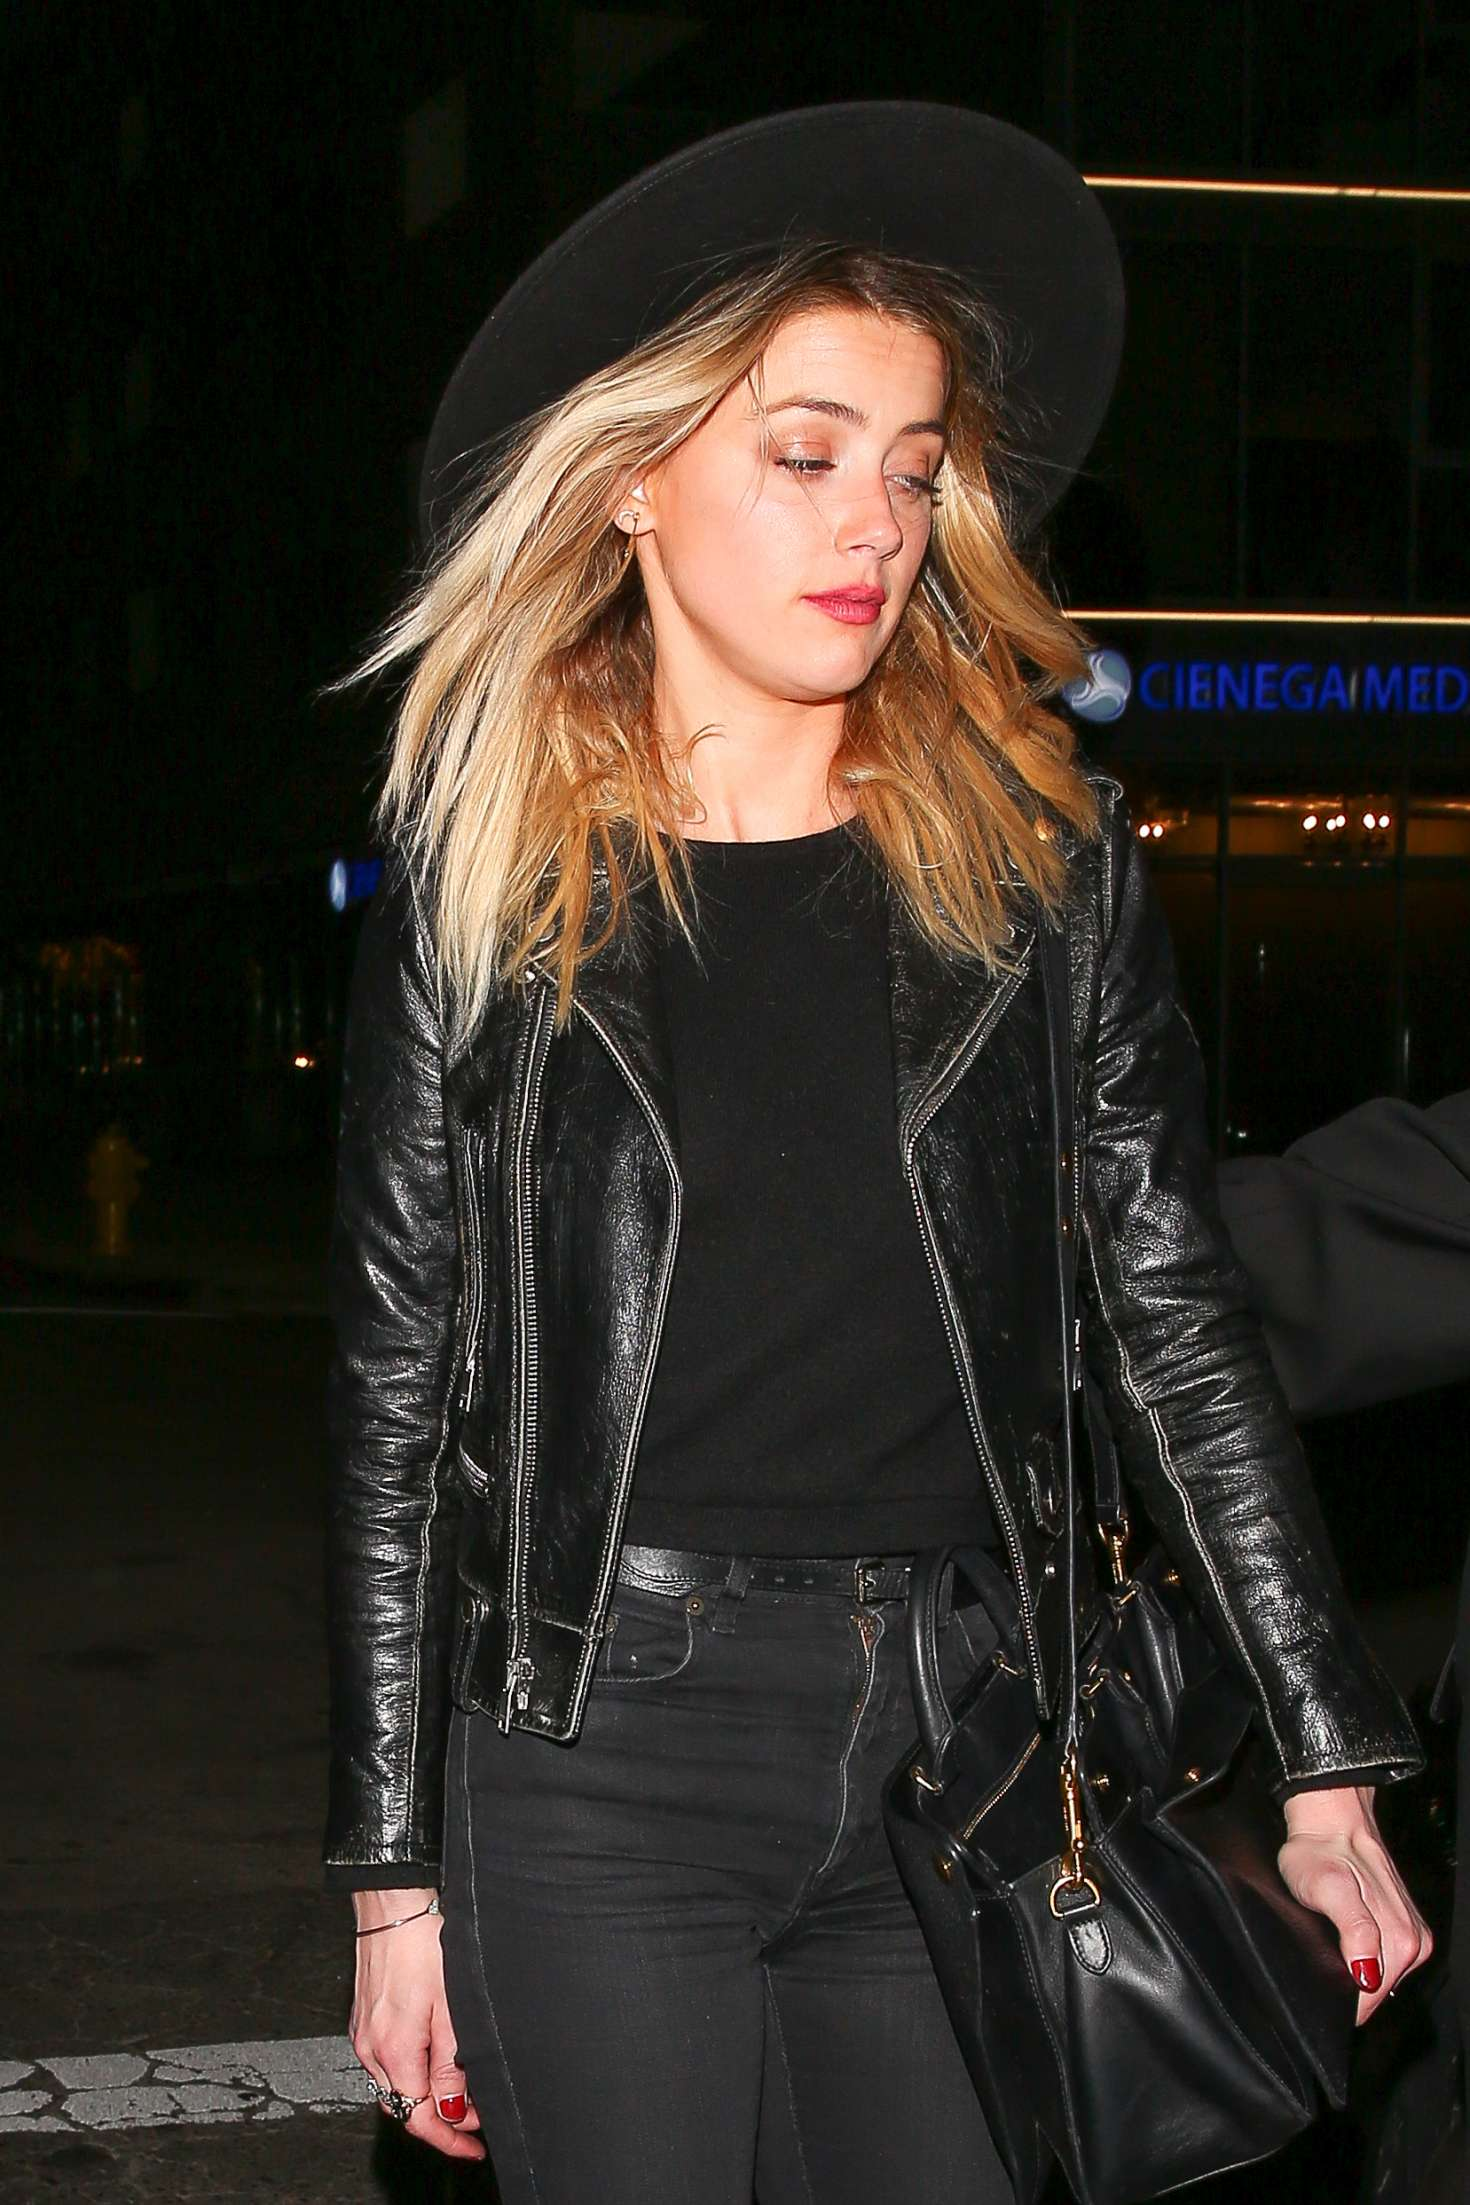 Amber Heard - Leaving Rihanna's Christmas Party at The Nice Guy in West Hollywood